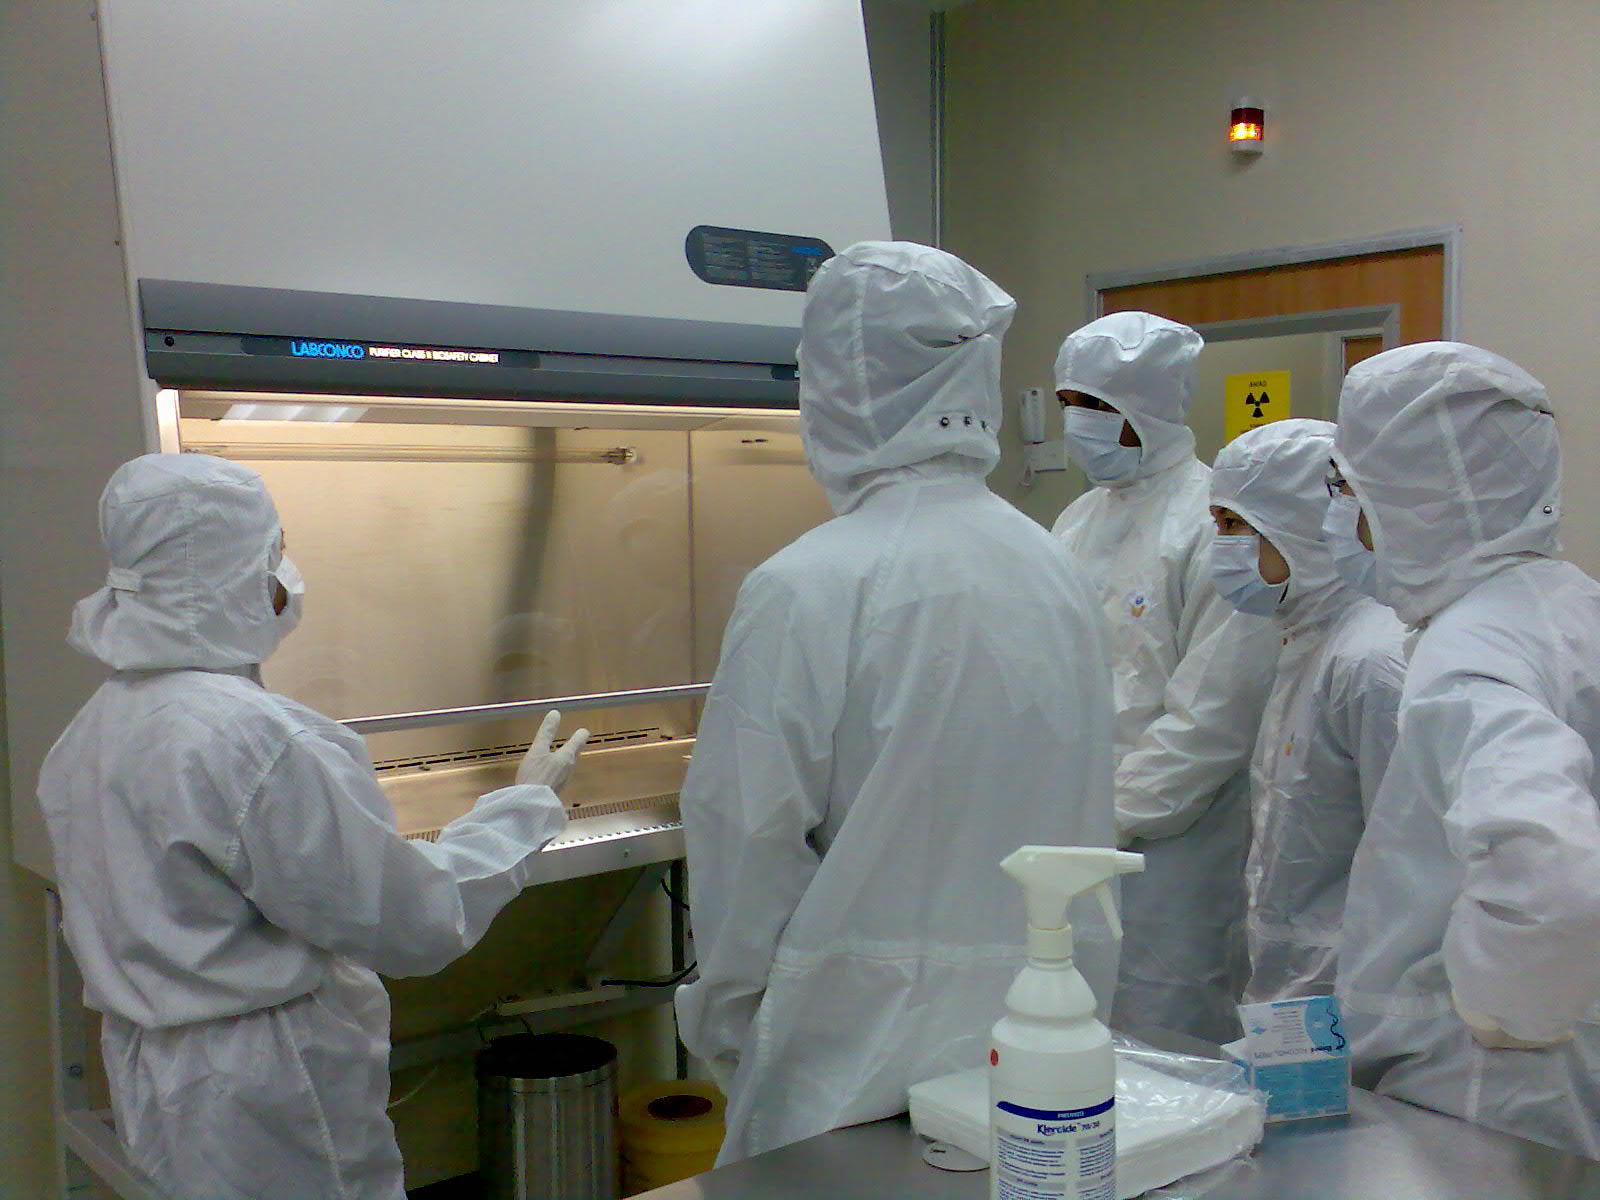 Conduct Aseptic technique training in Clean-room